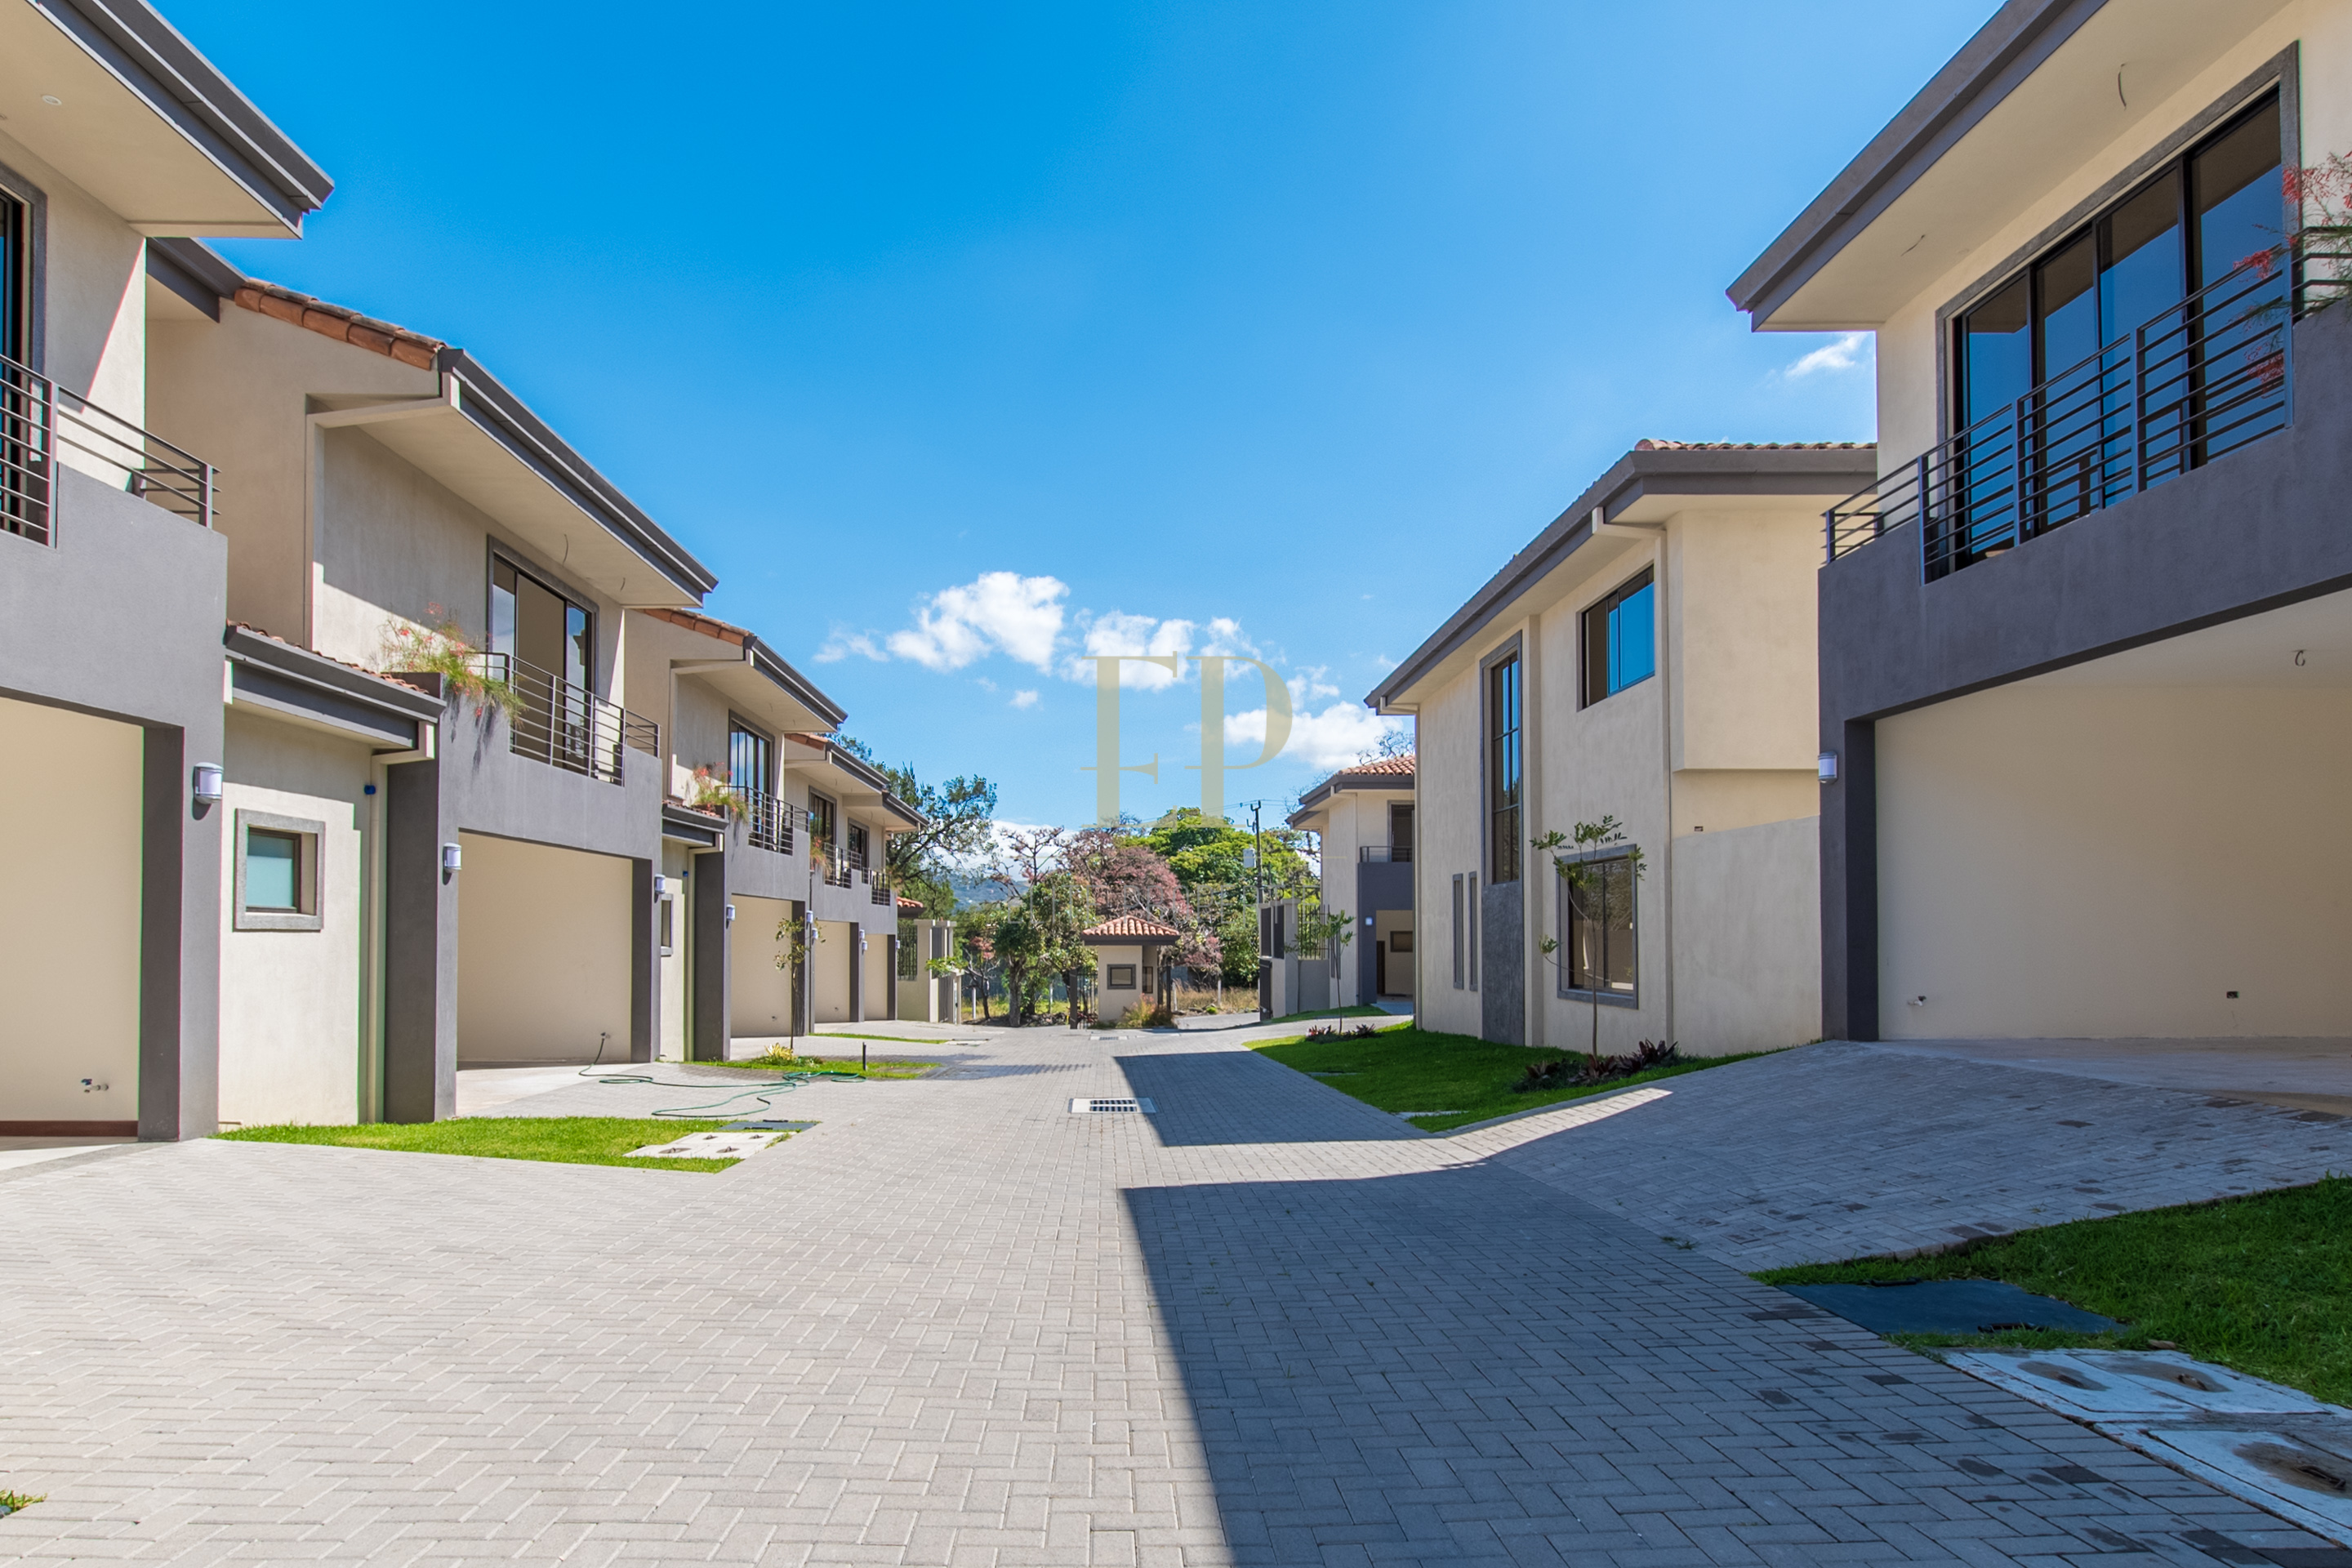 New two story houses in condominium located in Piedades